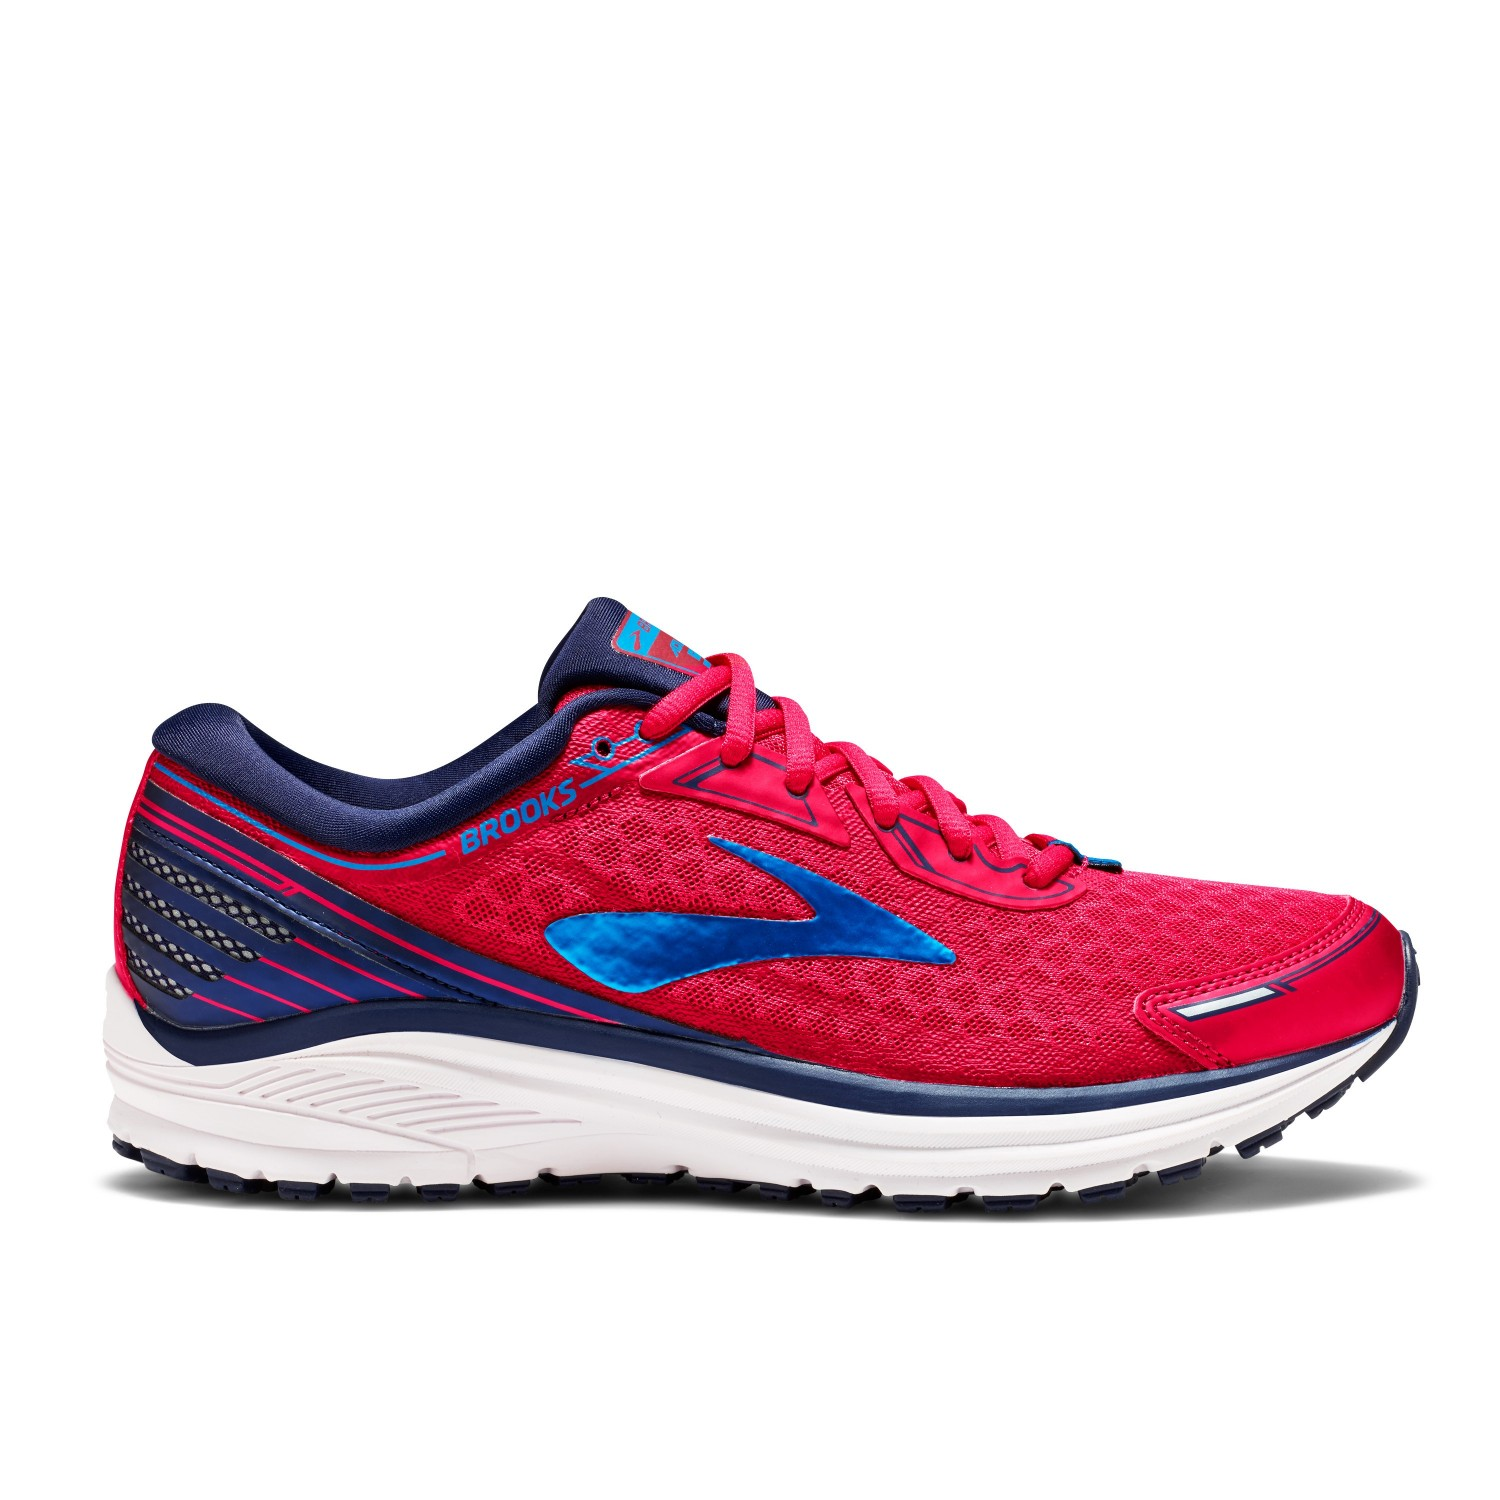 tenis saucony mujer